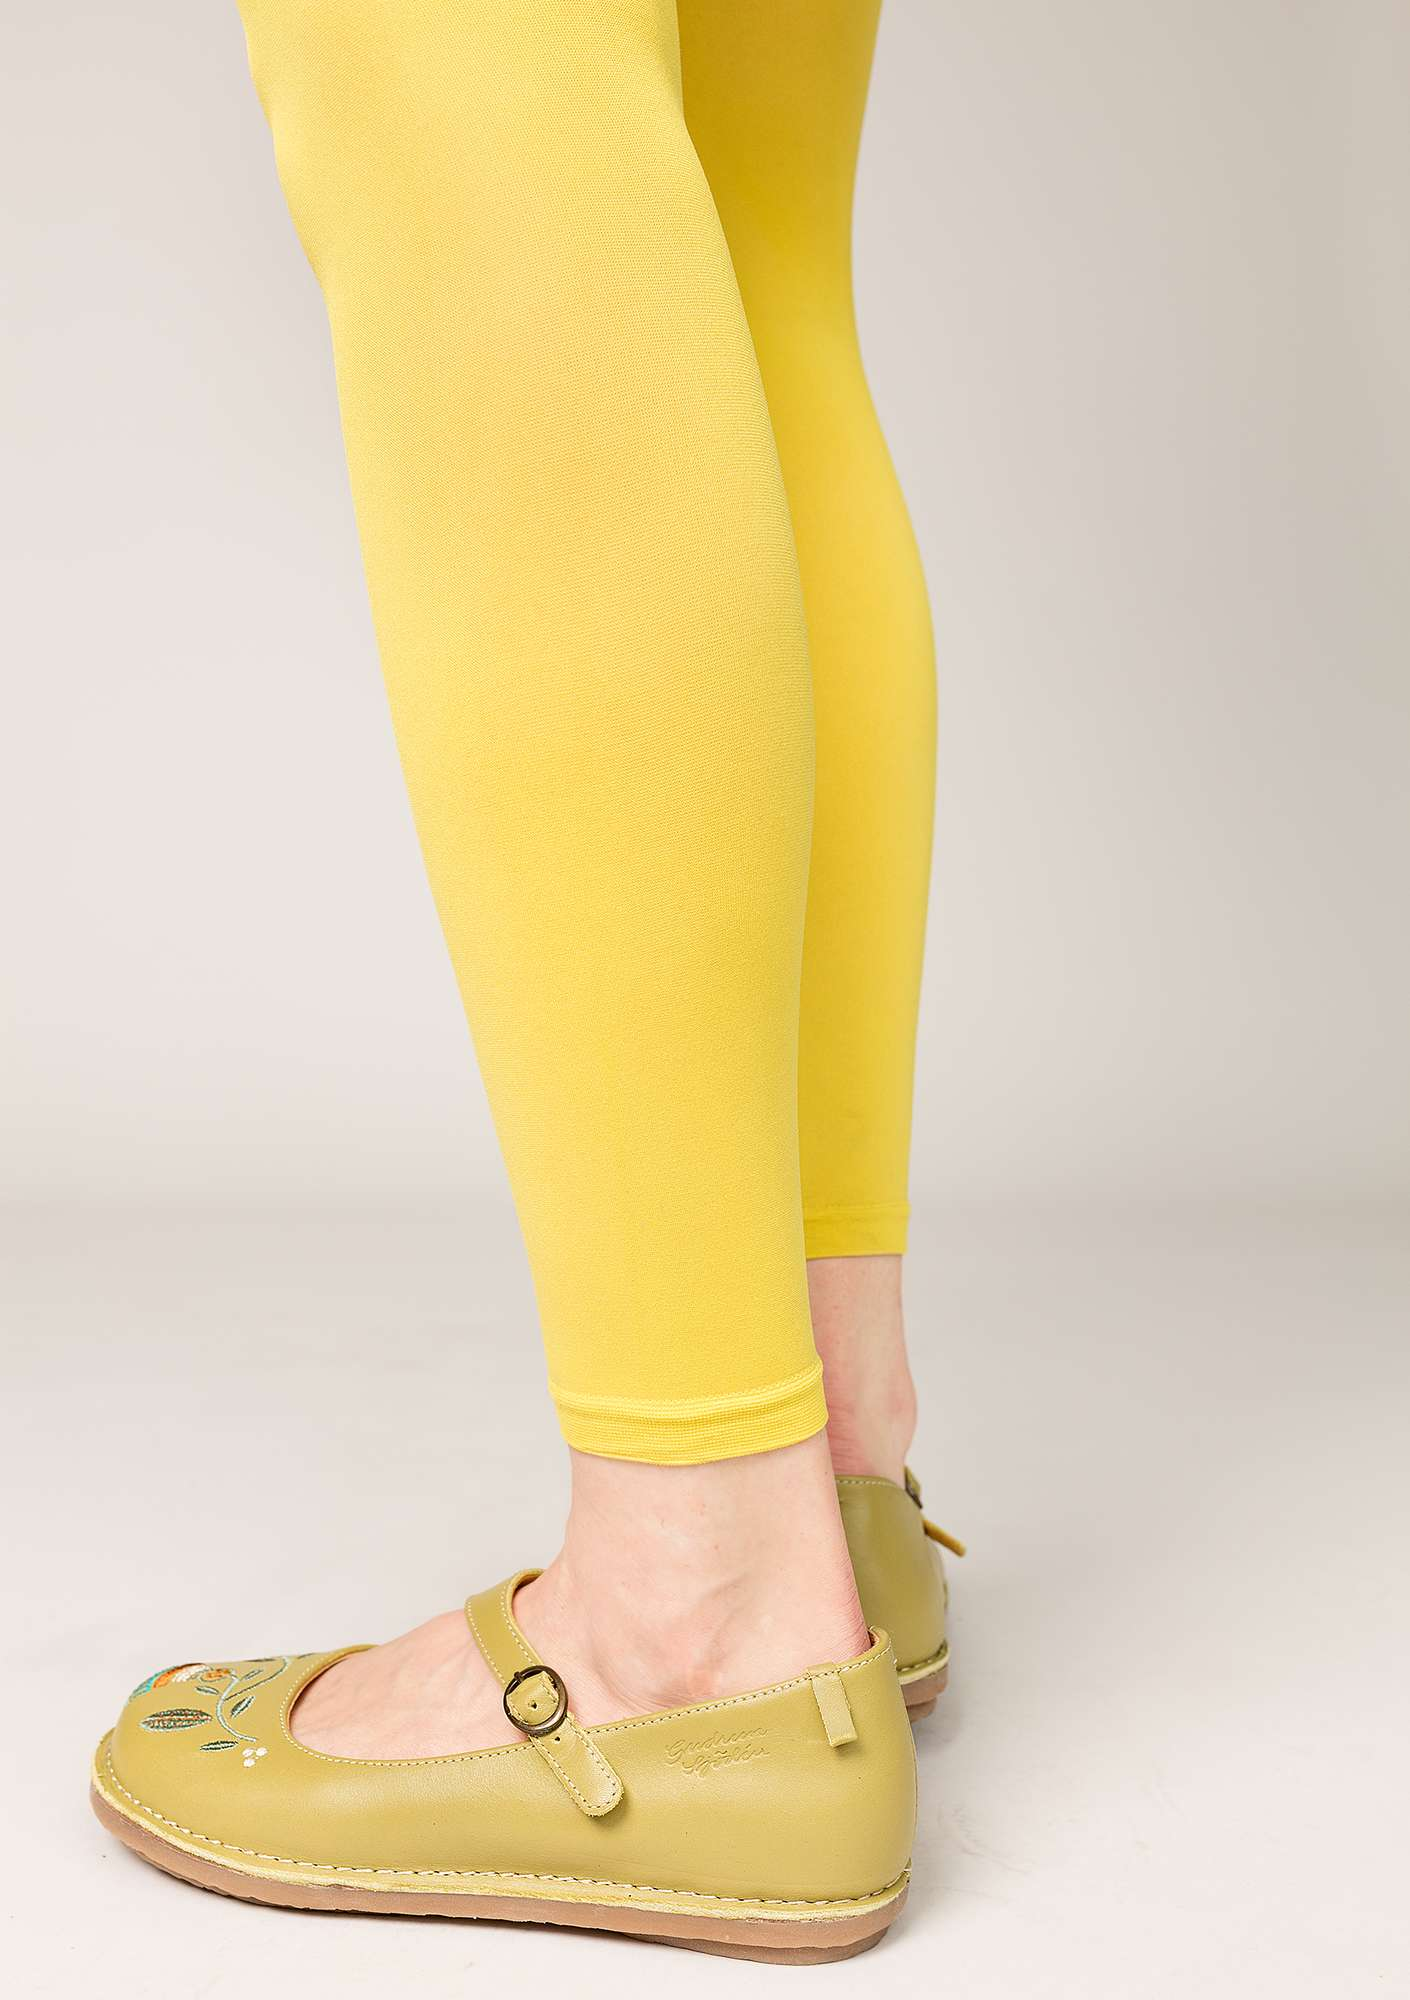 Ensfargede leggings